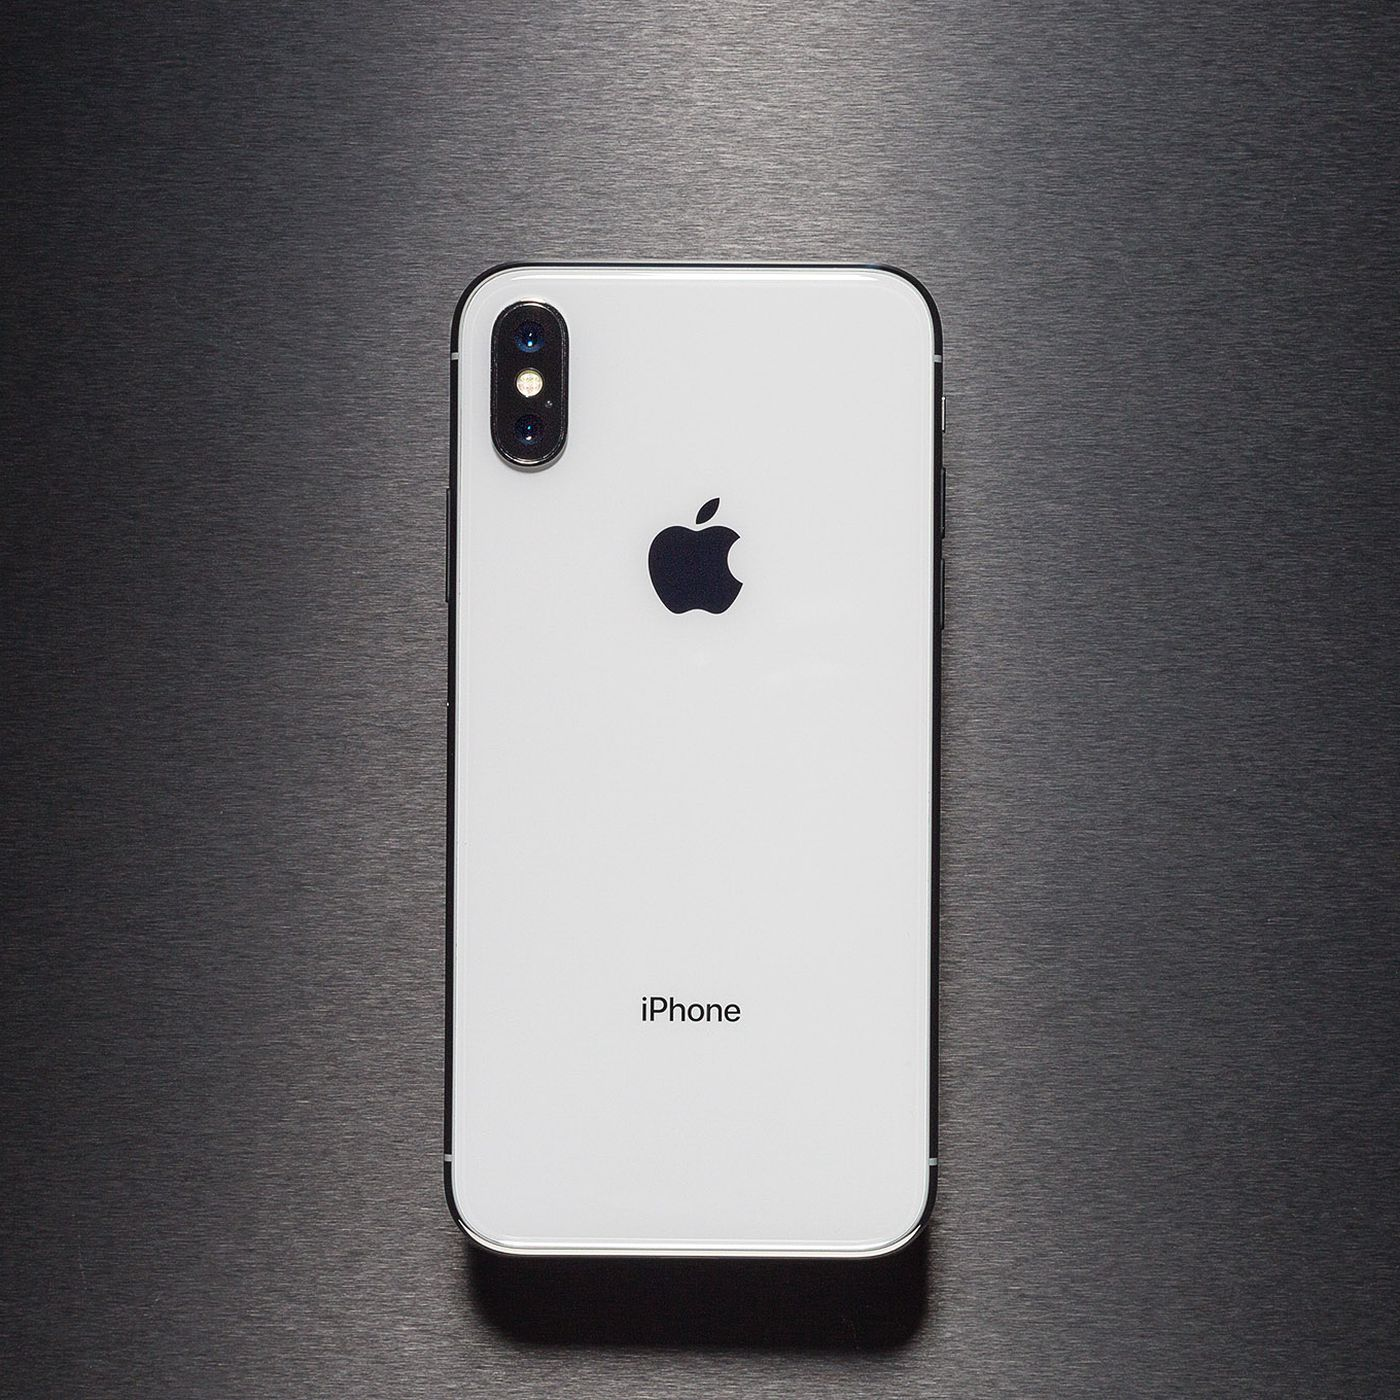 Apple now sells an unlocked, SIM-free version of the iPhone